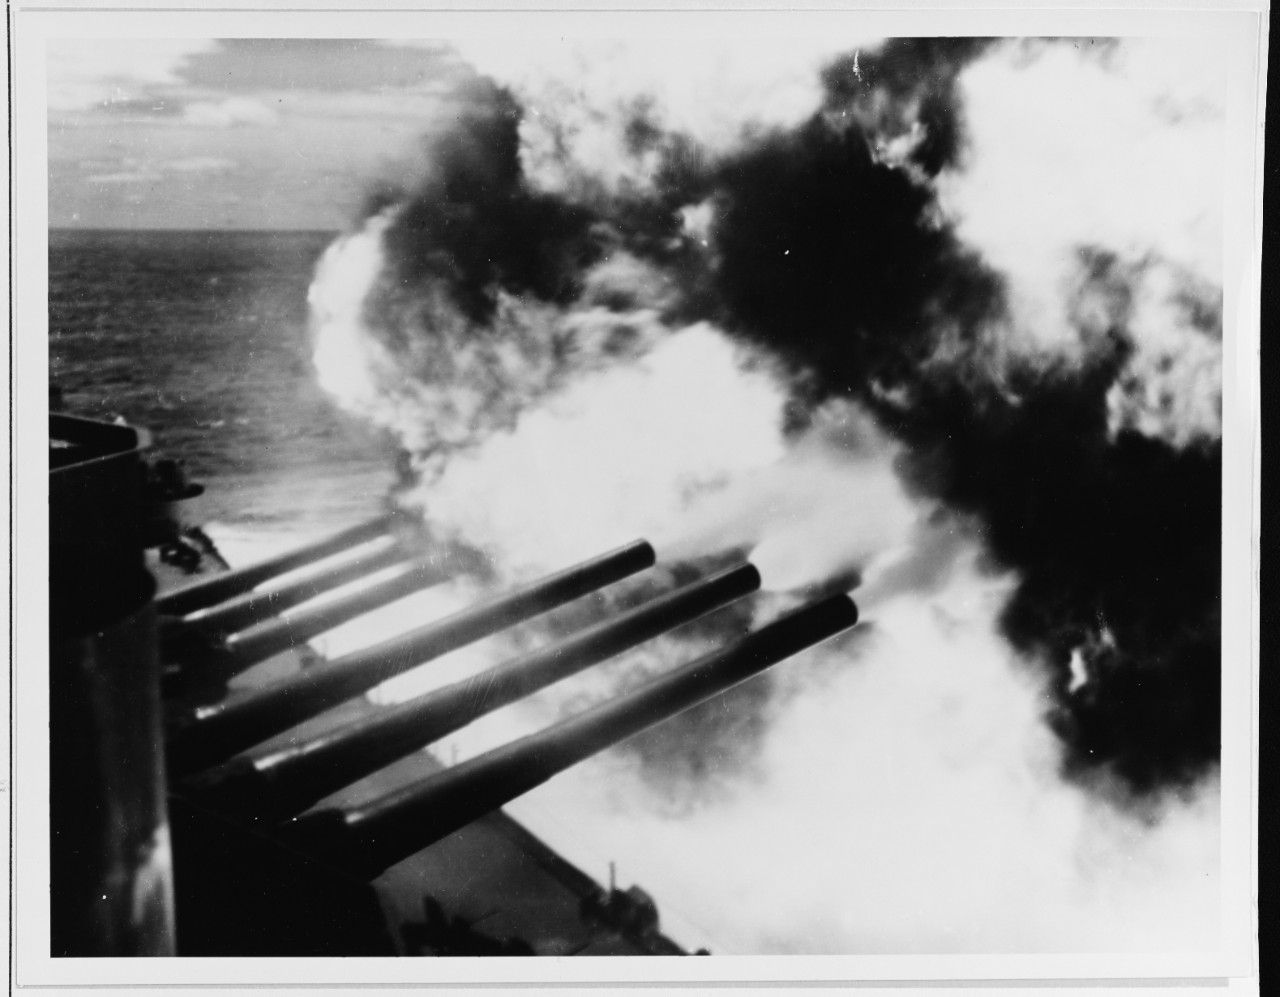 South Dakota fires her forward 16-inch guns of Turrets I and II at the Kamaishi Steel Works on Honshū, Japan, 14 July 1945. (National Archives Photograph 80-G-490175, Still Pictures Branch, National Archives & Records Administration, College Park, Md.)